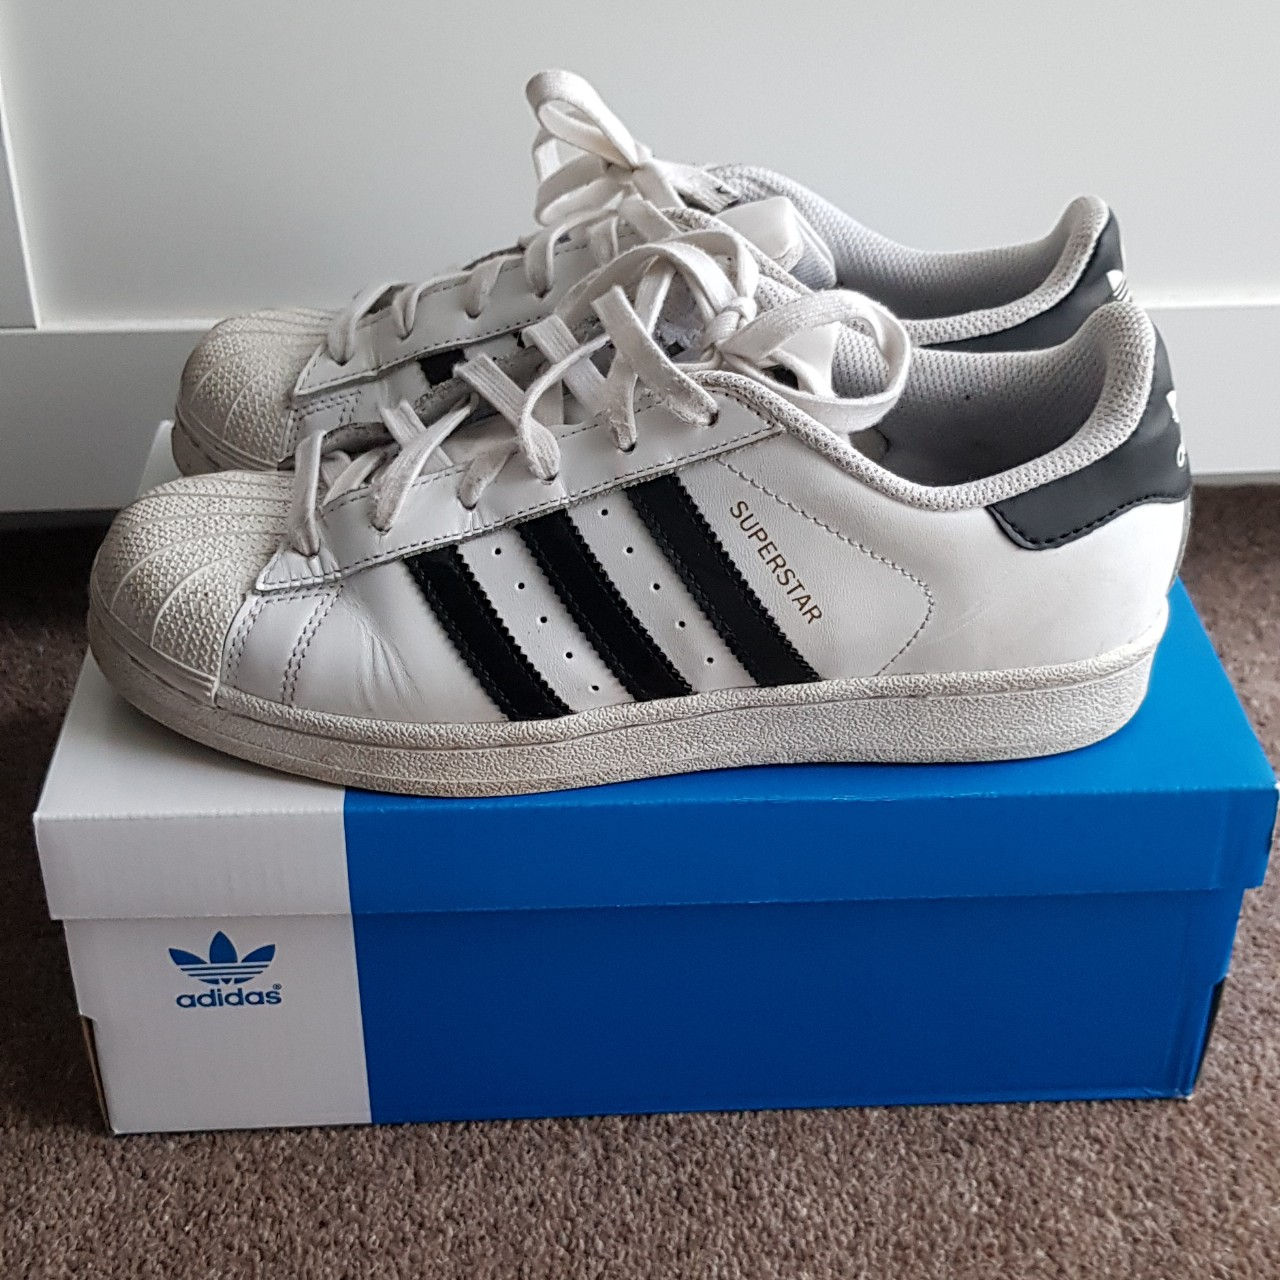 Adidas Superstar. Black and white classic. UK size Depop